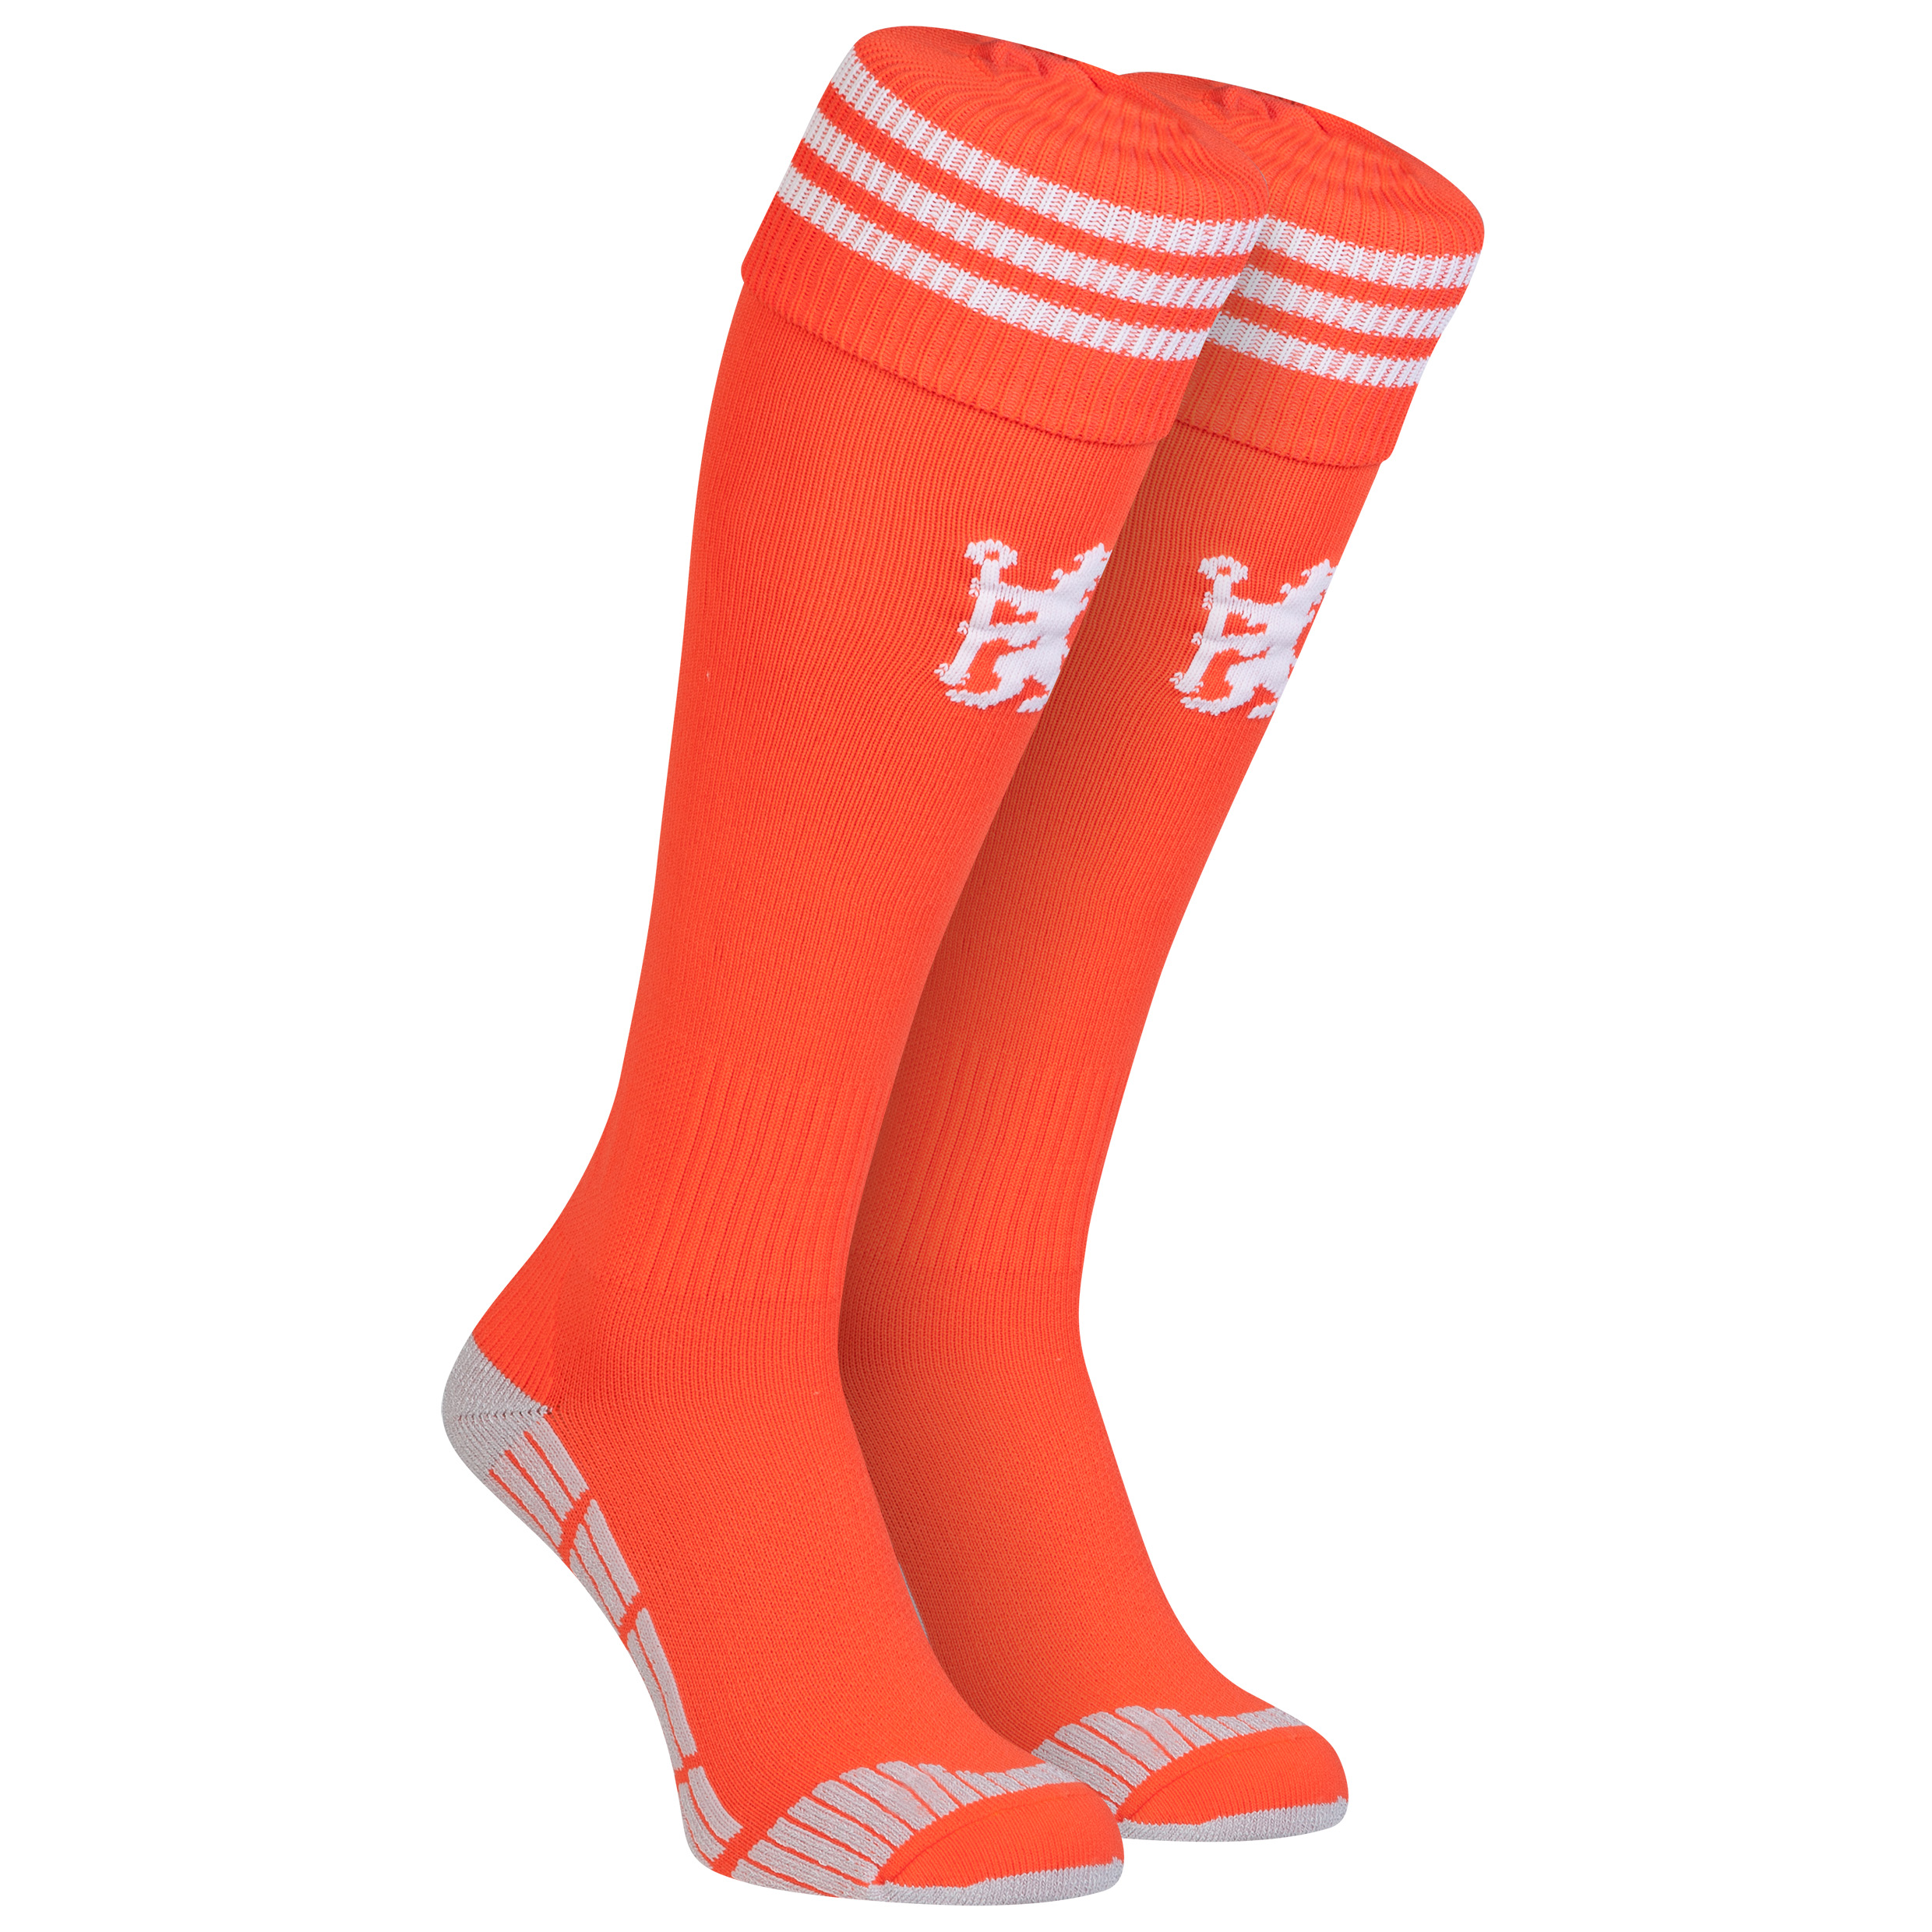 Chelsea Goalkeeper Socks 2014/15 - Solar Red